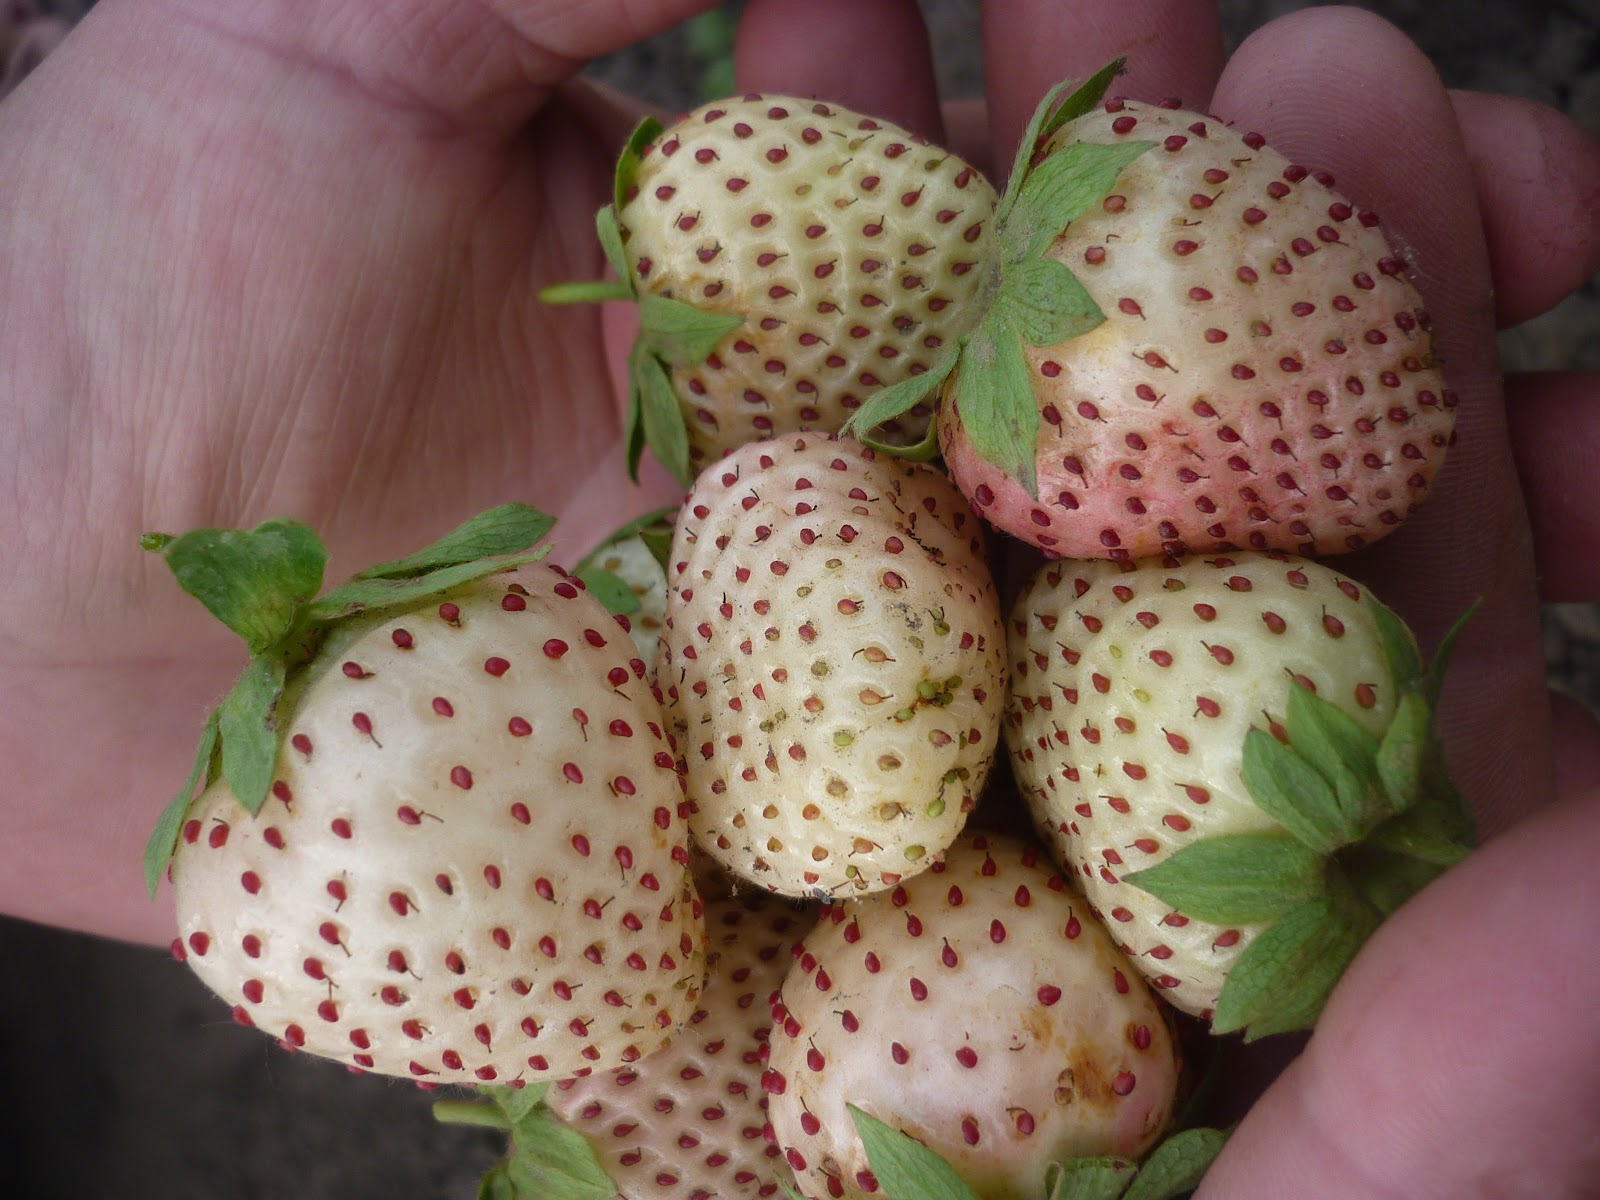 White strawberries Wallpaper